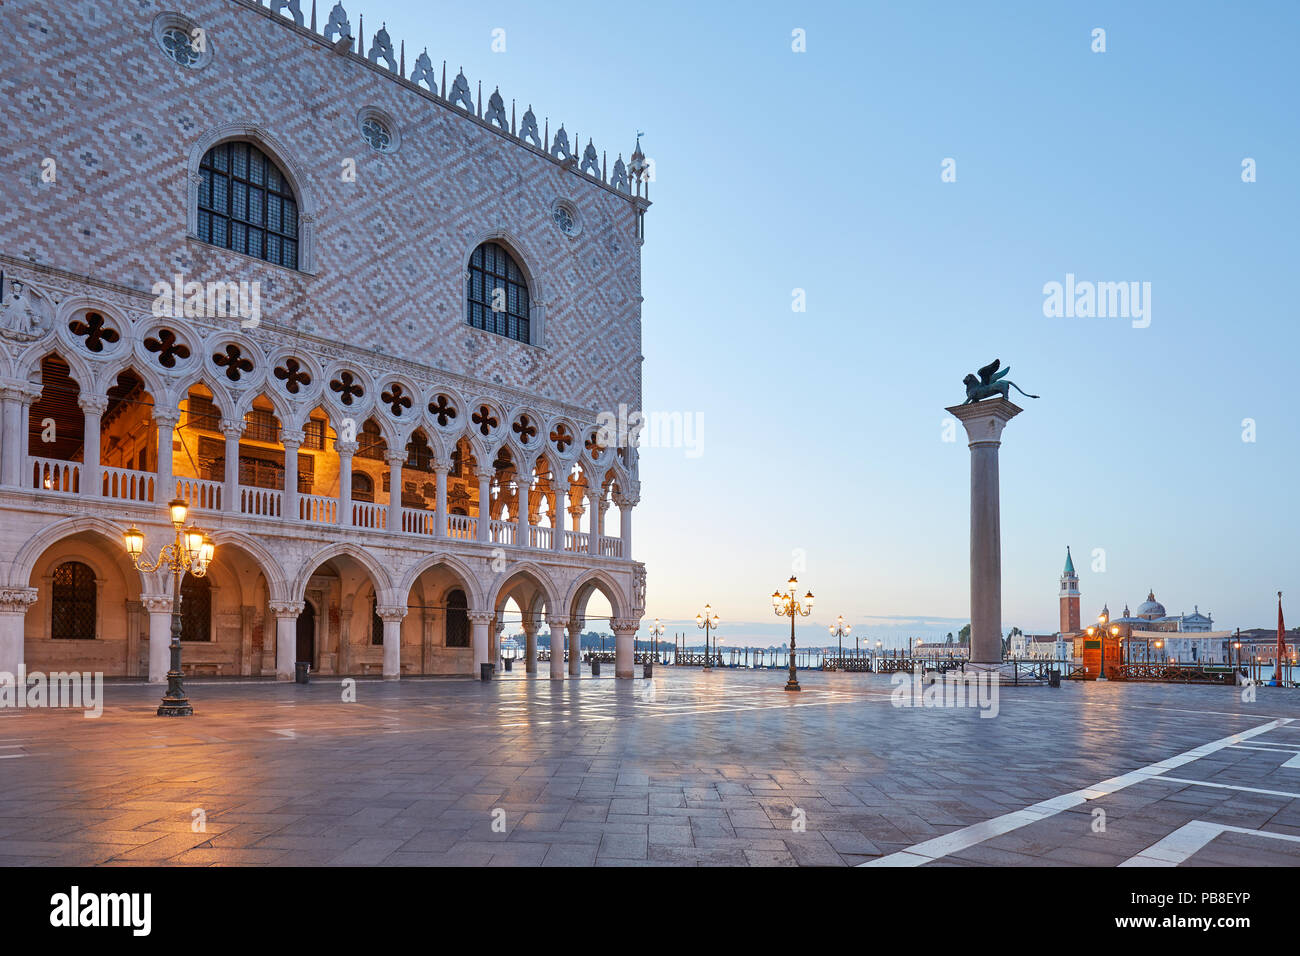 San Marco square with Doge palace and column with lion statue, nobody at sunrise in Venice, Italy - Stock Image